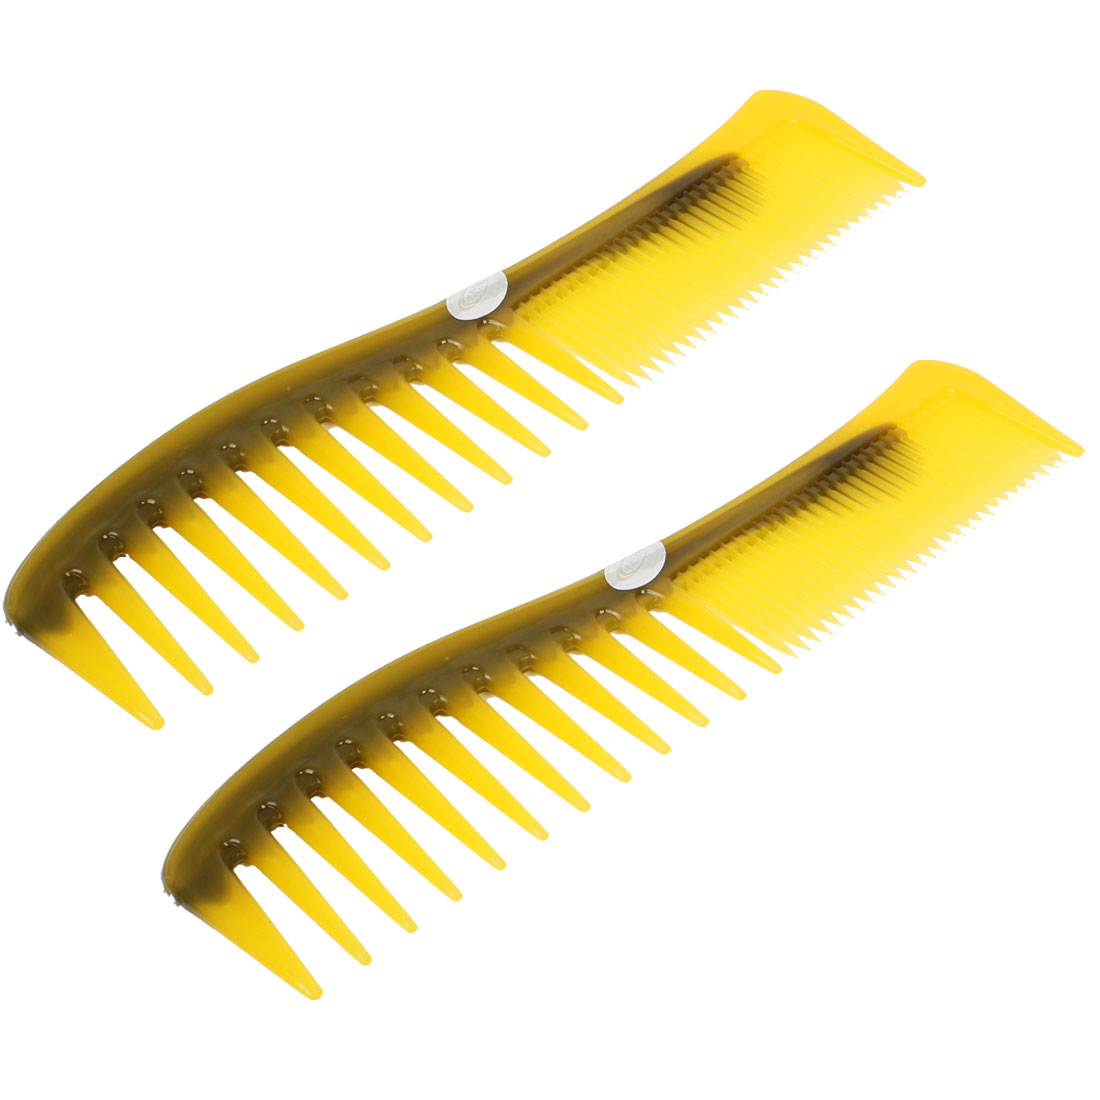 "Brown Plastic Fine Wide Teeth Hair Care Cutting Comb 7.5"" Long 2pcs for Lady"